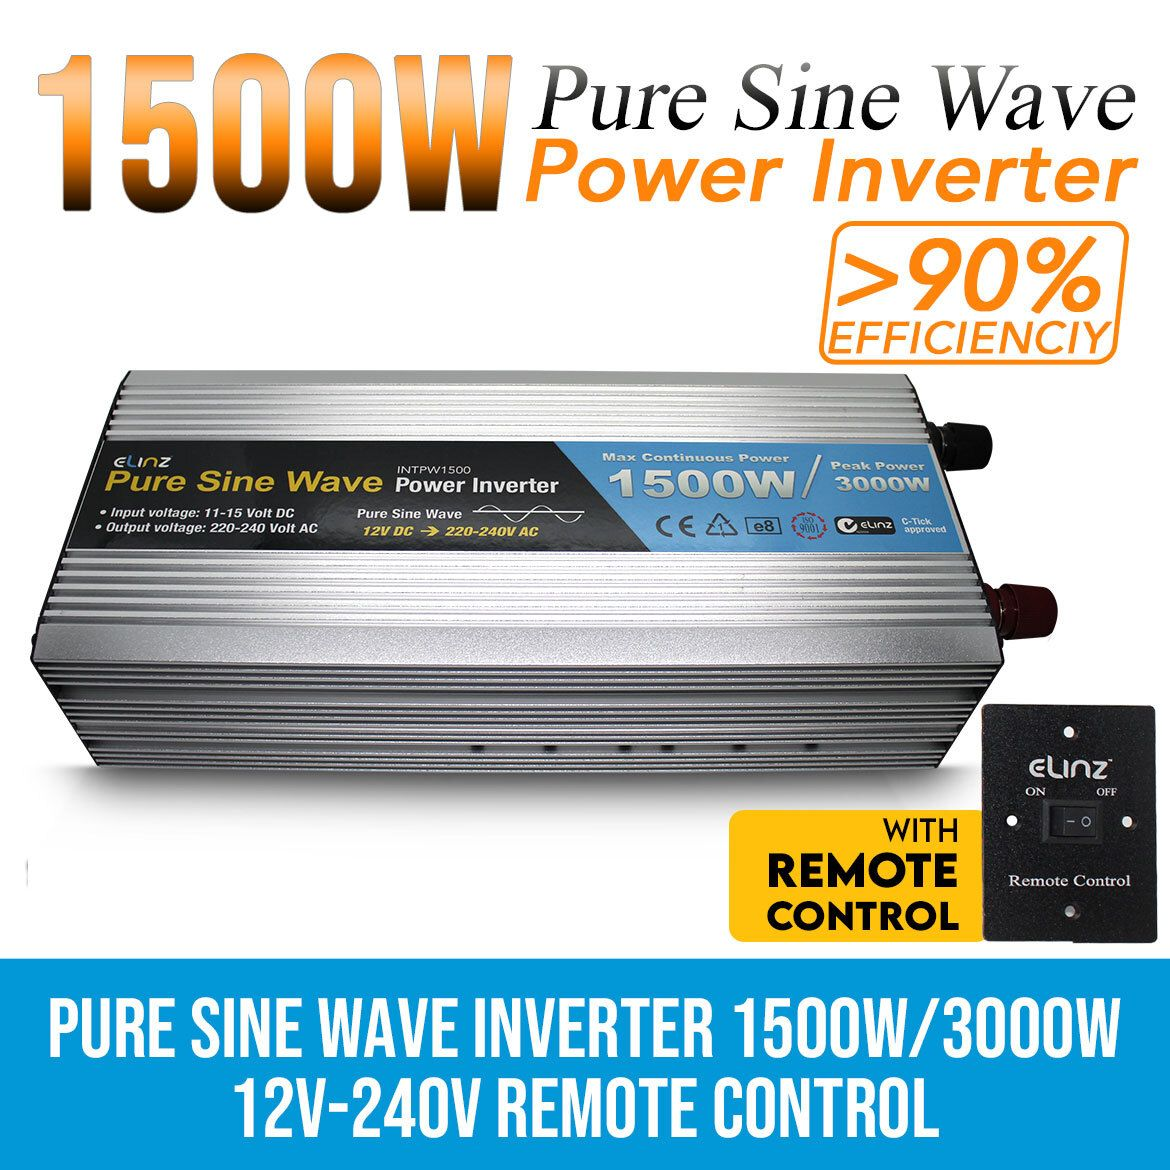 Pure Sine Wave Power Inverter 1500w 3000w 12v 240v Aus Plug Remote Control In 2020 Power Inverters Sine Wave Remote Control